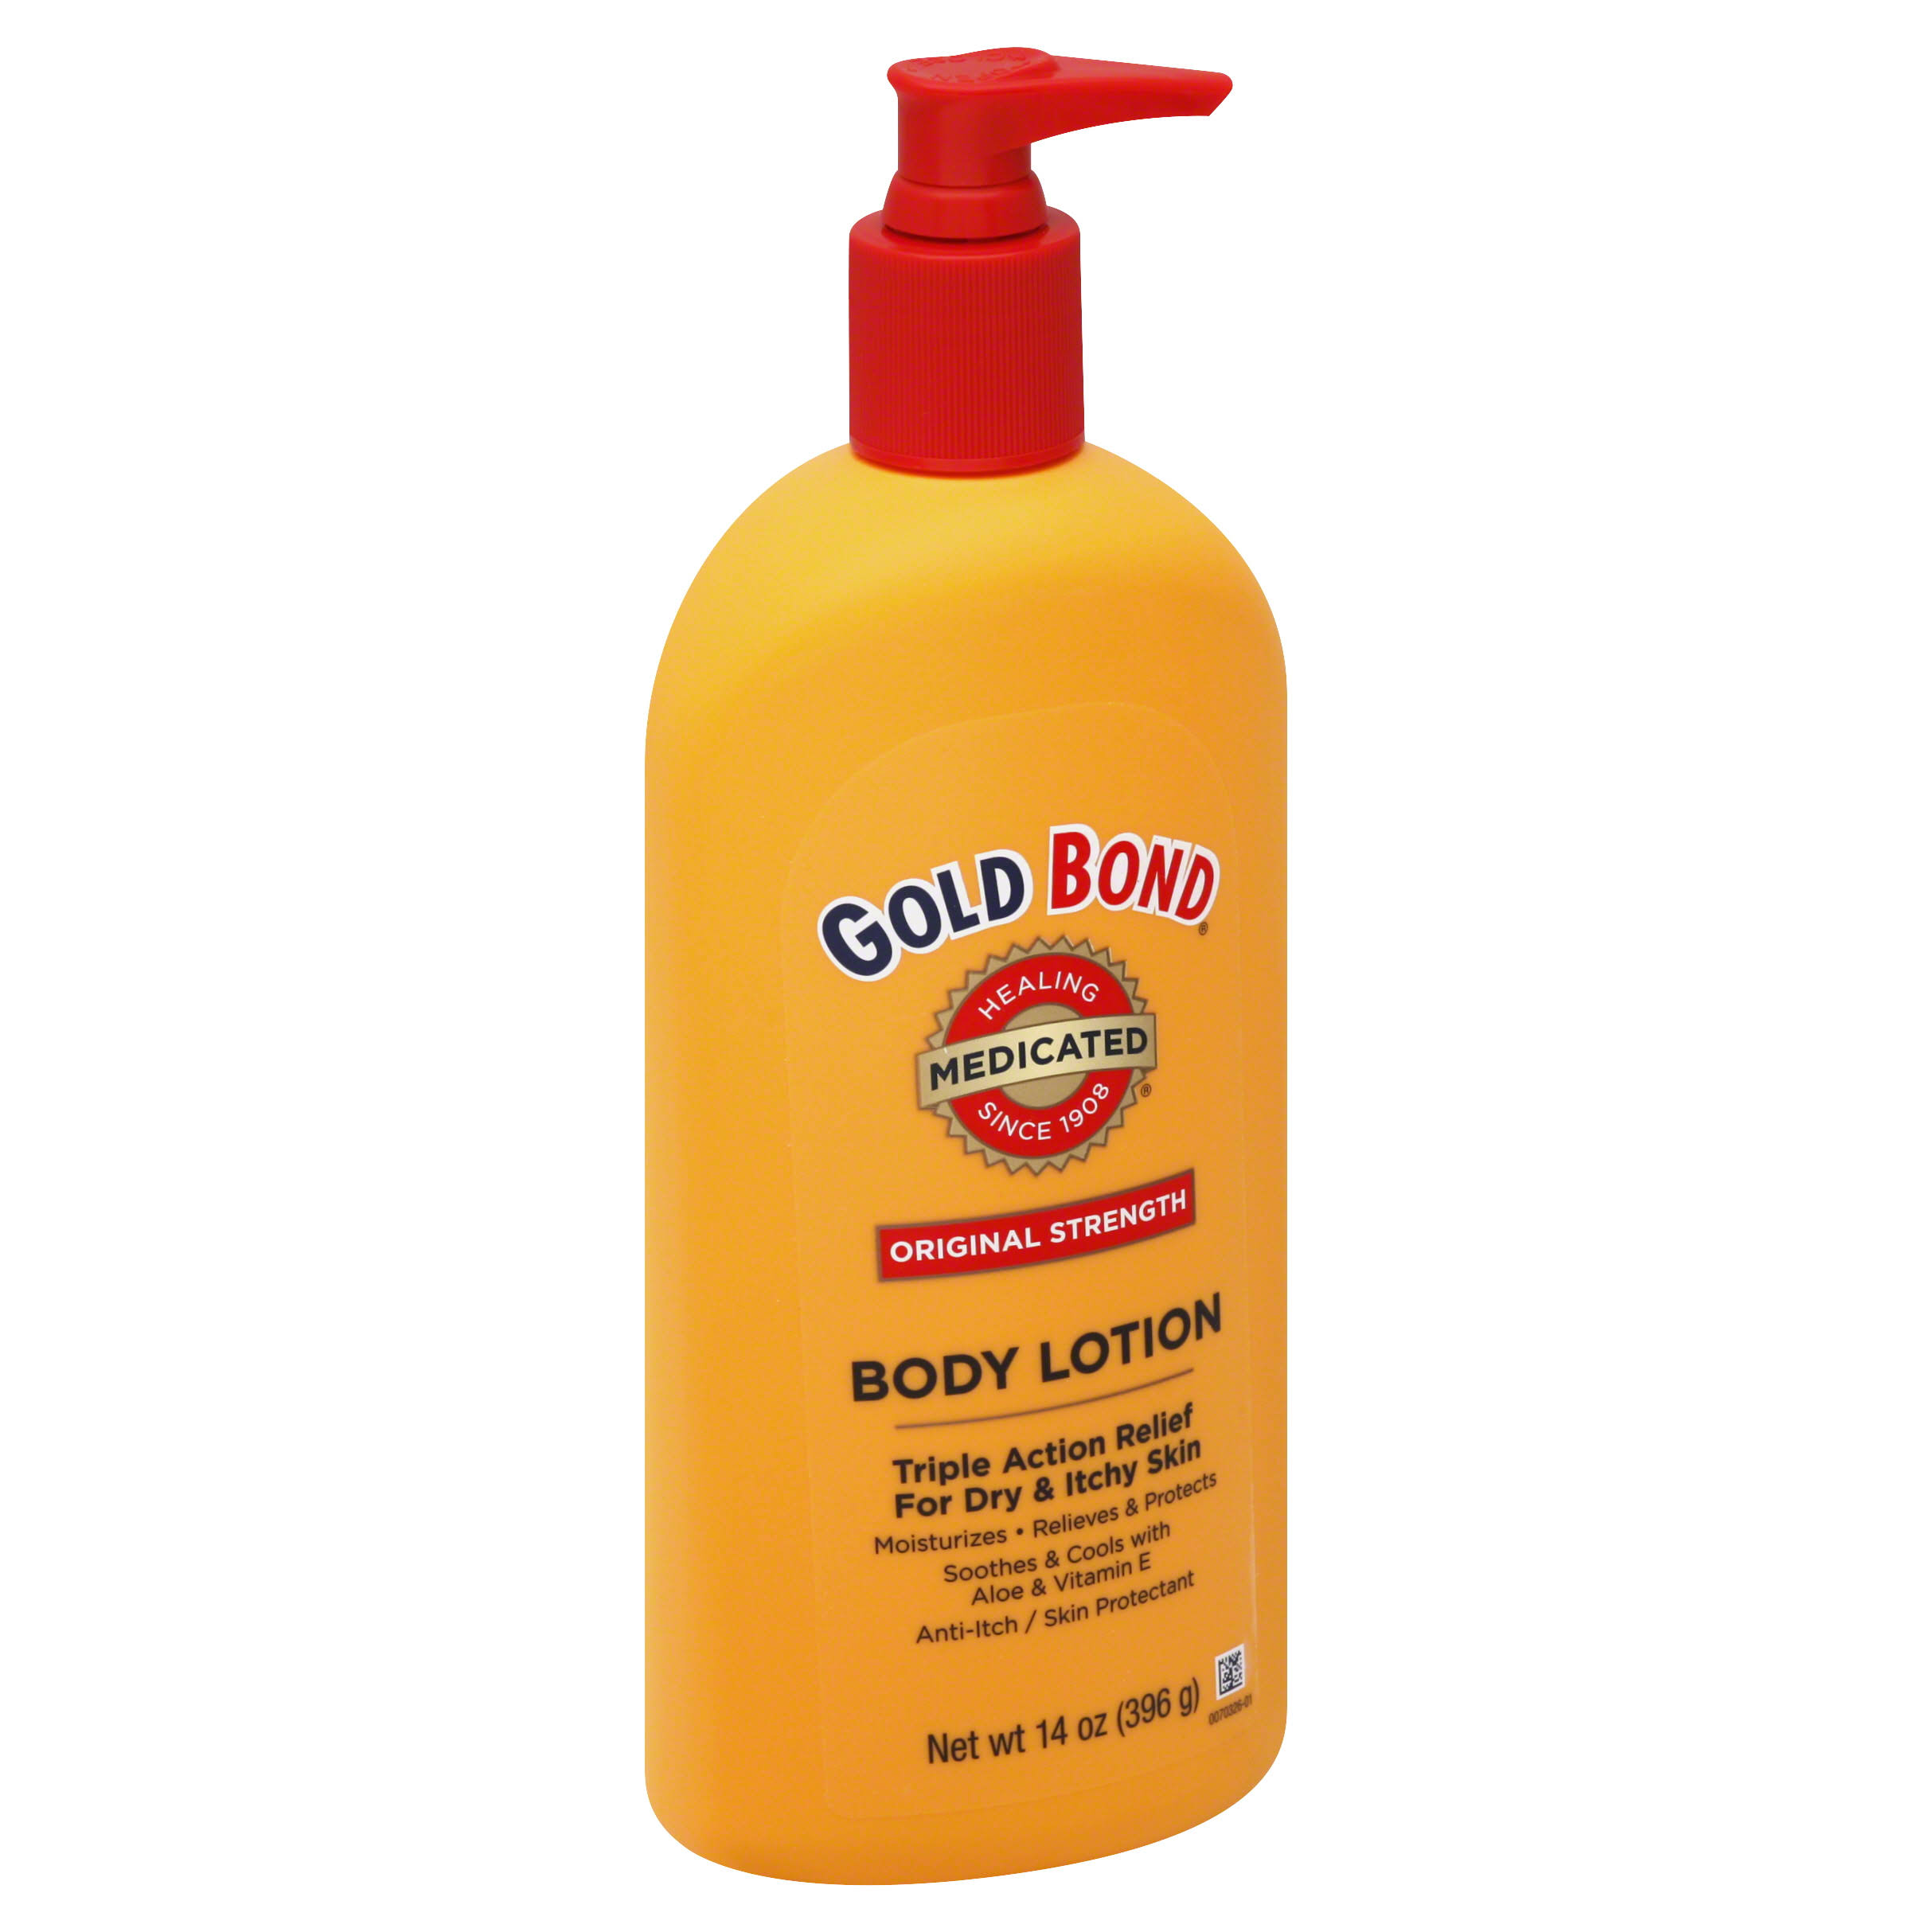 Gold Bond Original Strength Medicated Triple Action Relief Body Lotion - 14oz